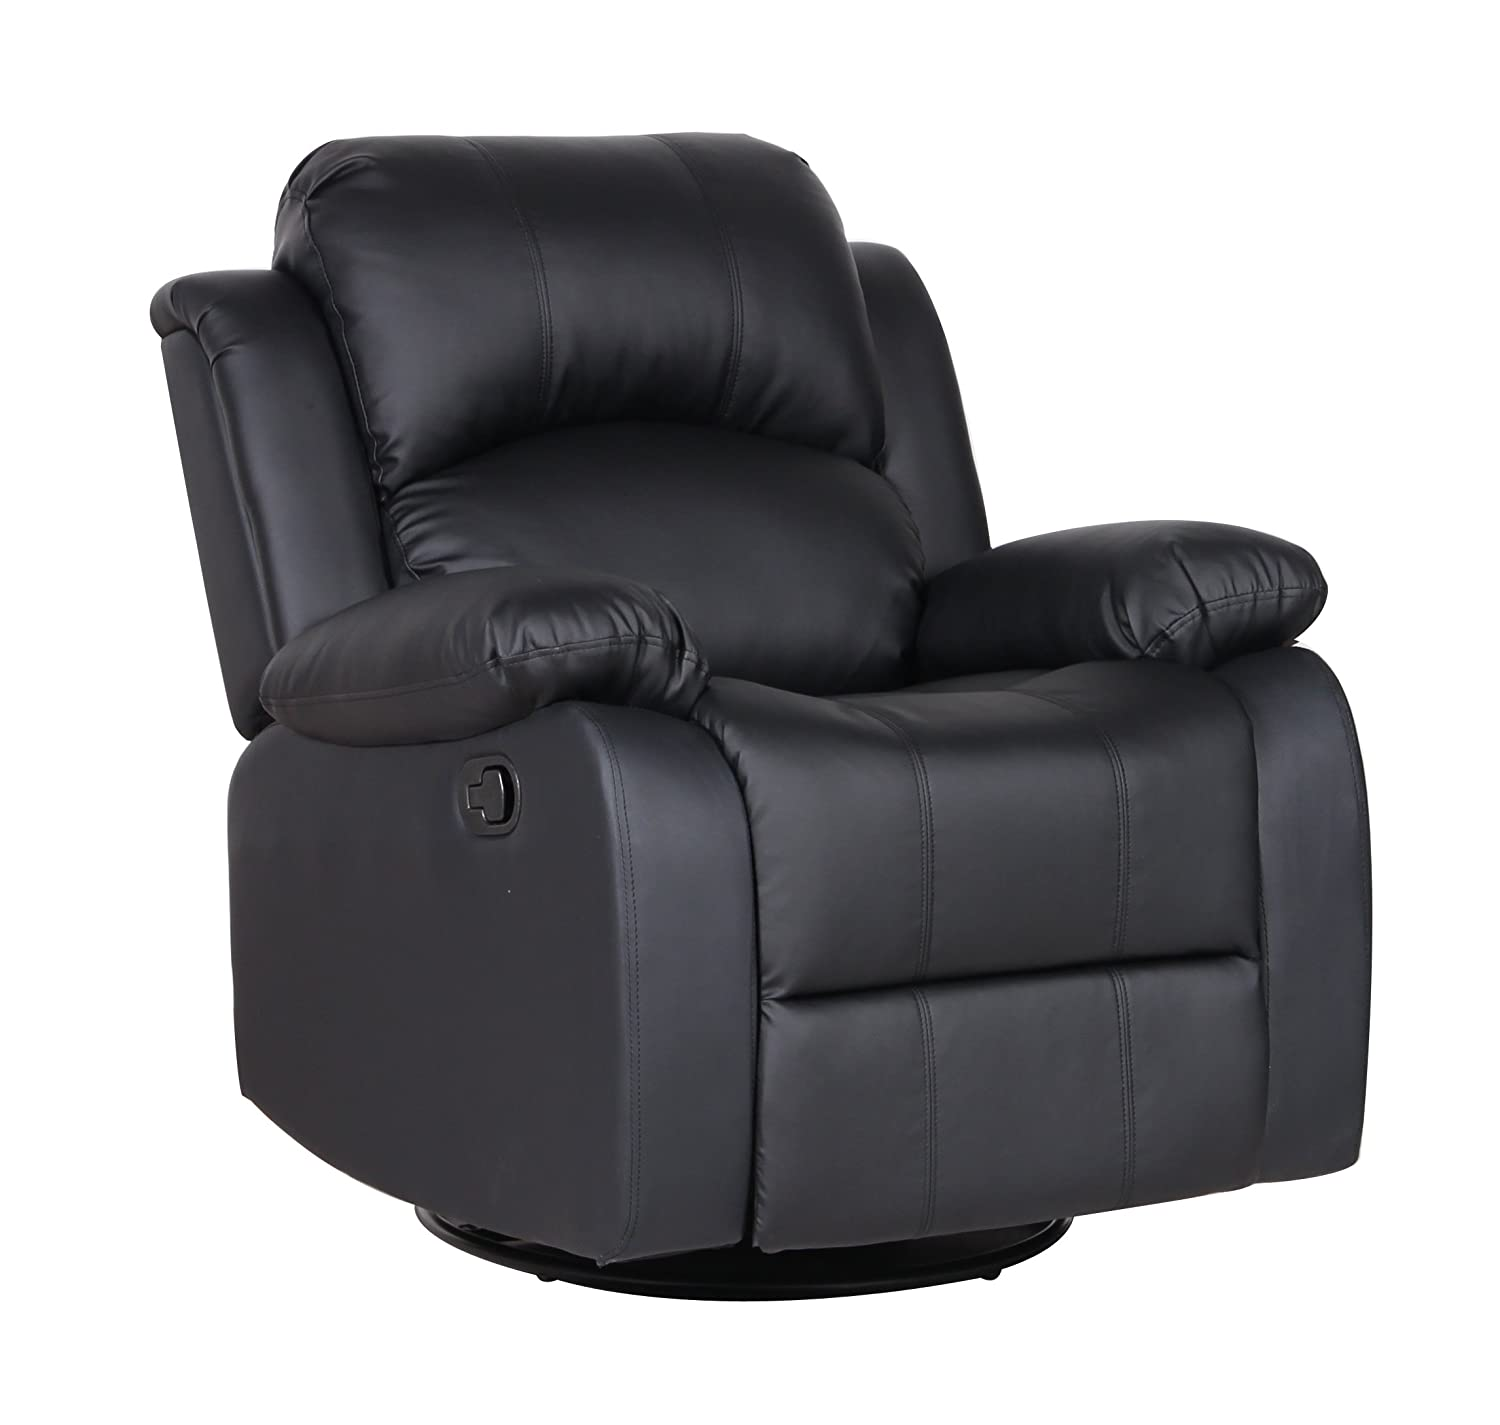 swivel recliner chairs best swivel recliner chairs swivel recliner chair best swivel recliner  sc 1 st  Comfortable recliner.com : best leather recliners - islam-shia.org